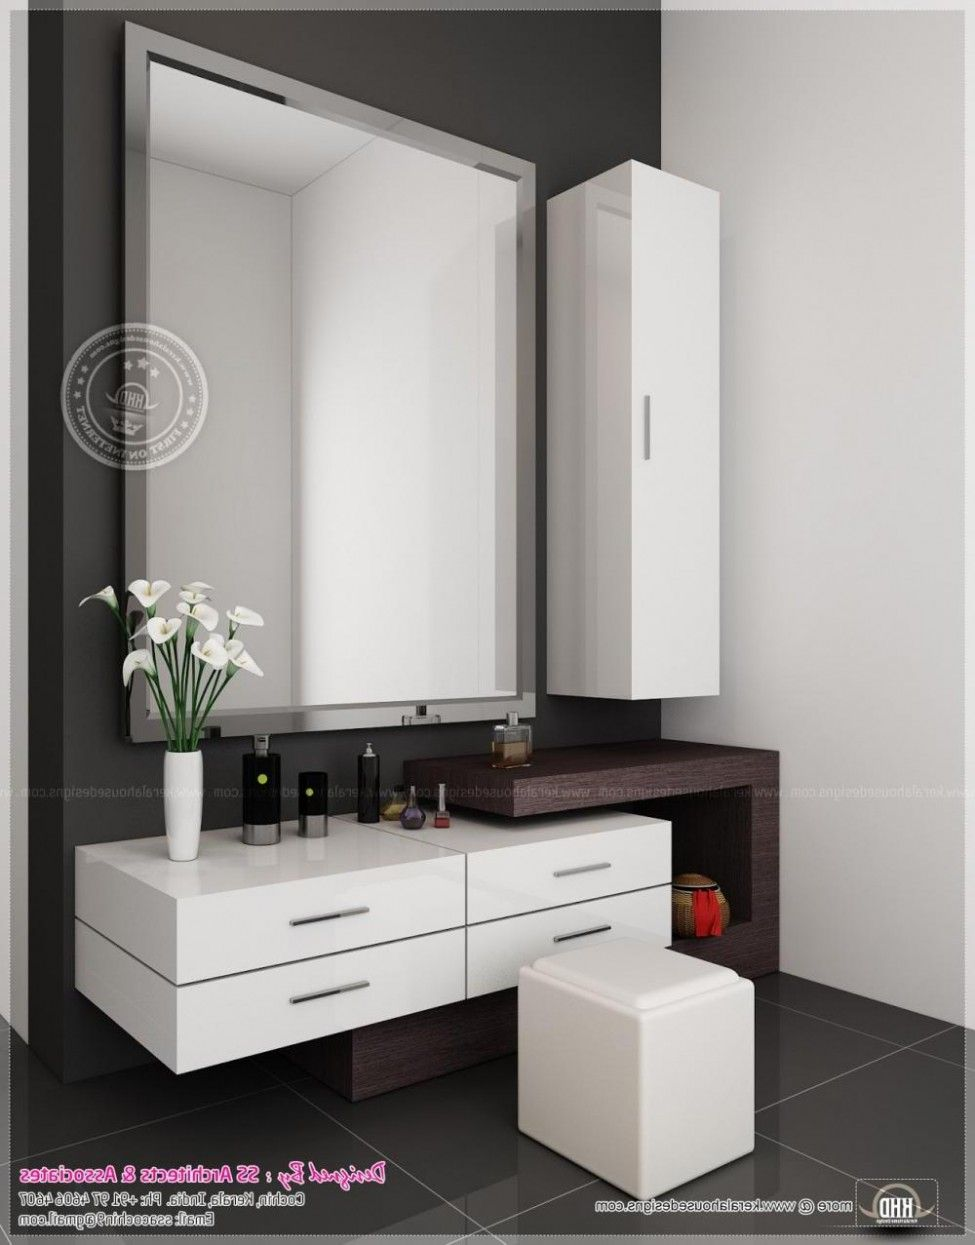 Incroyable Dressing Table Minimalist And Modern Latest Dressing Table Design In  Bedroom With Picture